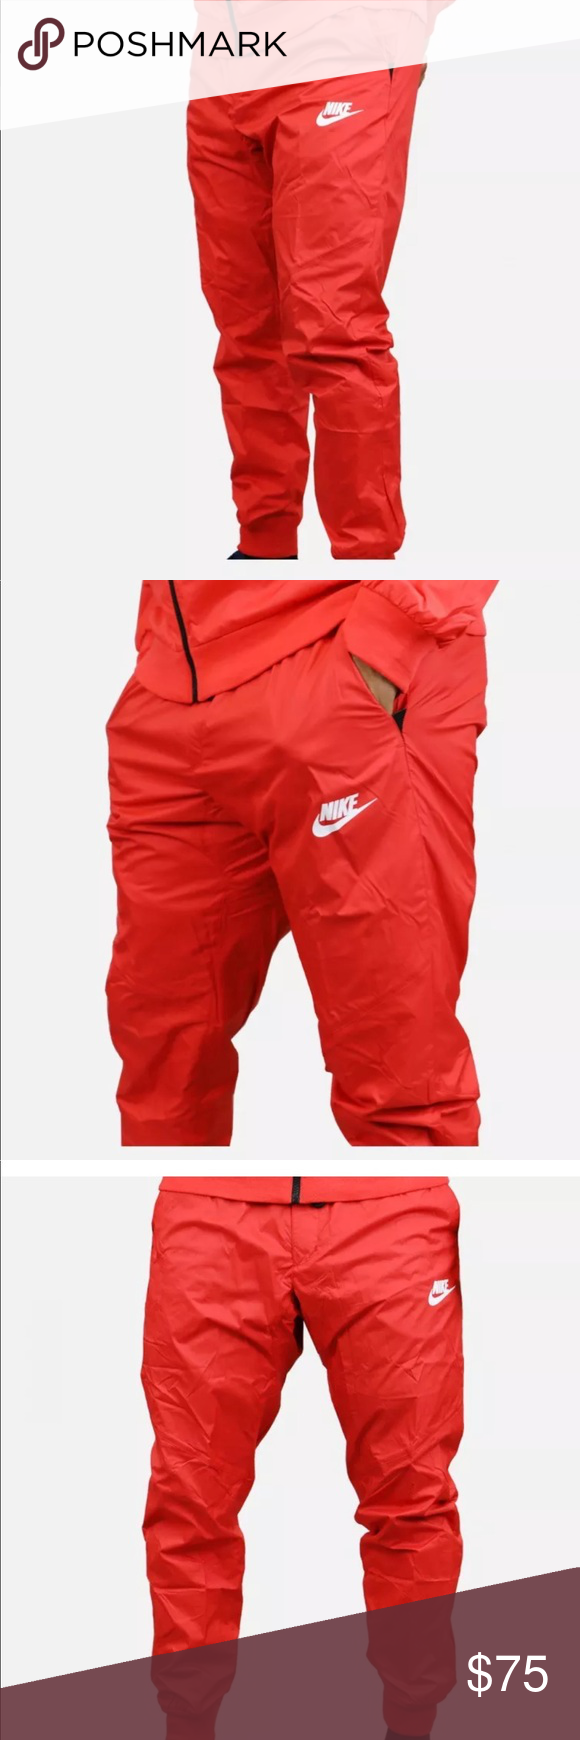 low priced 2a34d a4eb8 MENS XS NIKE WINDRUNNER CUFFED JOGGER PANTS The Nike Sportswear Windrunner  Mens Pants feature ripstop fabric